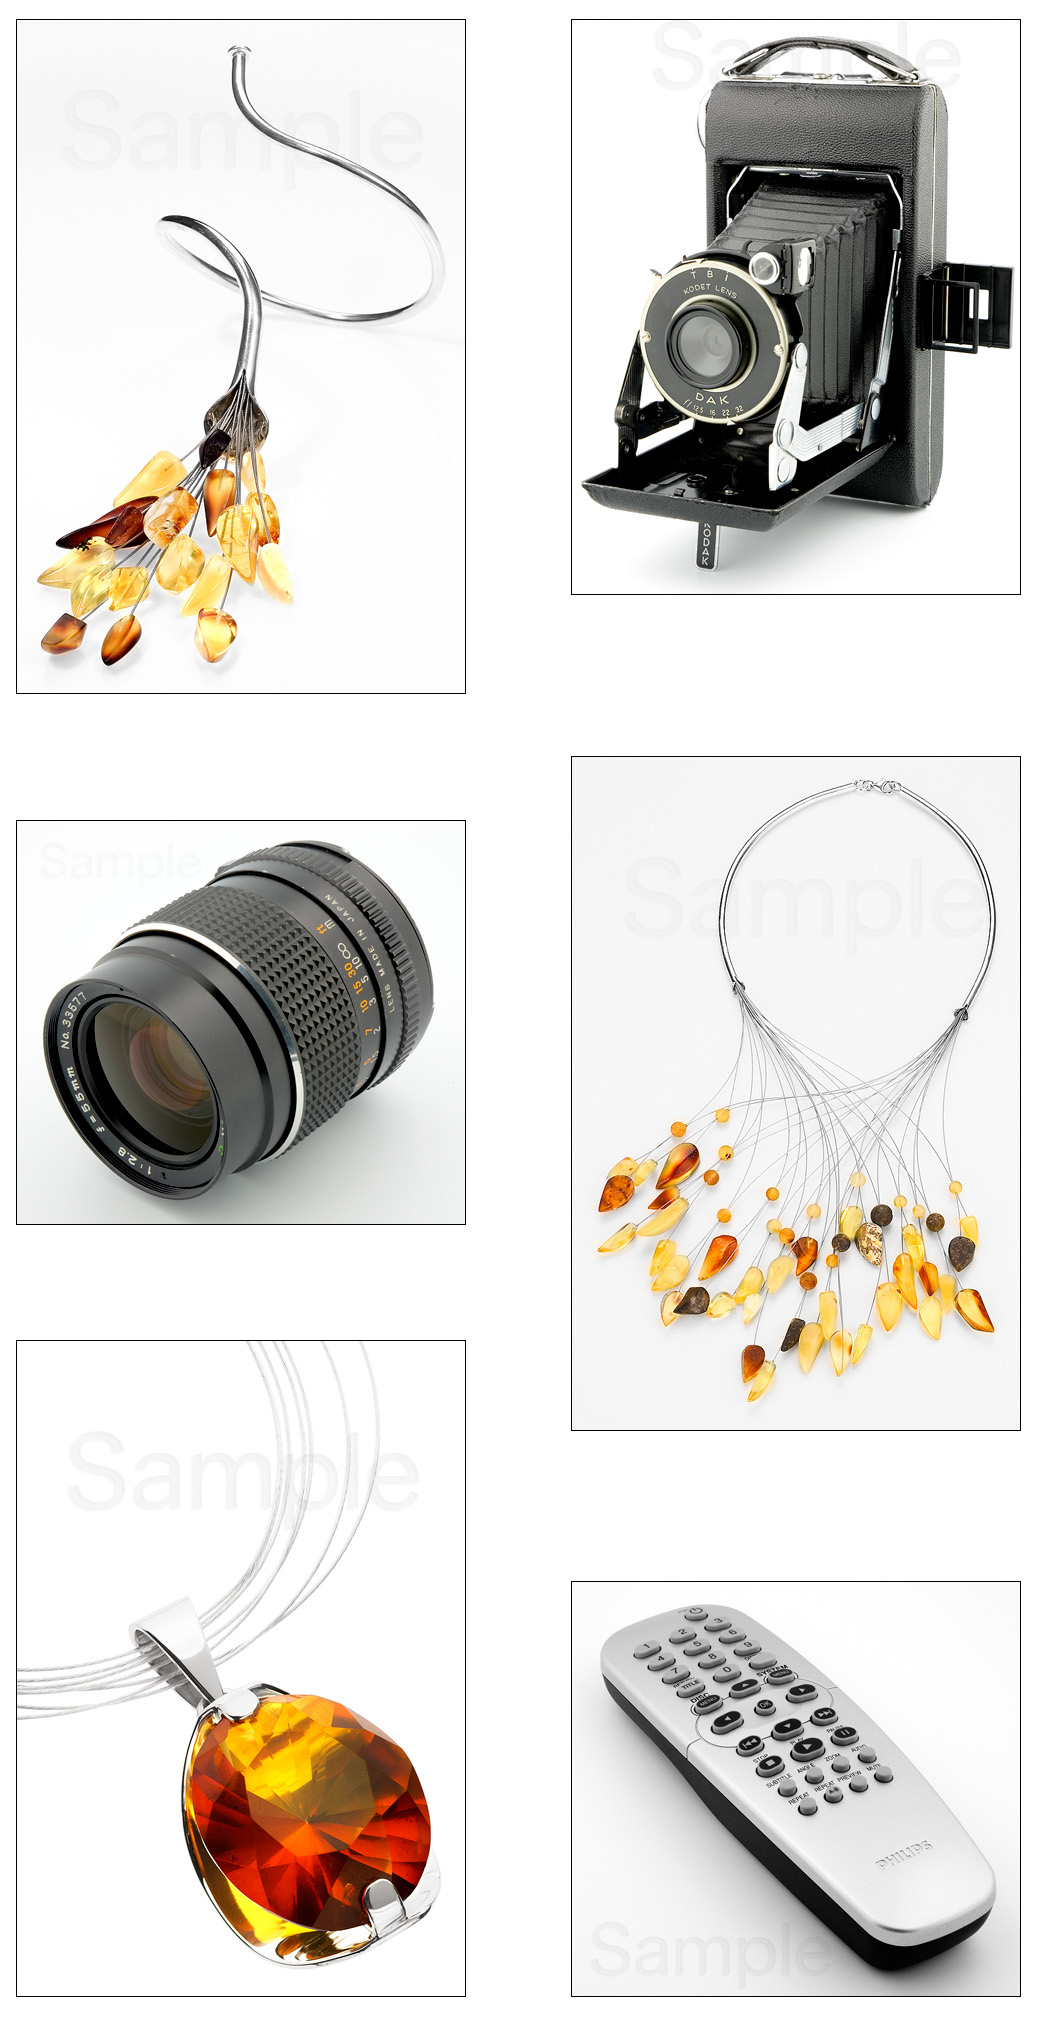 new prisma photo light box digital jewelry photography ebay. Black Bedroom Furniture Sets. Home Design Ideas